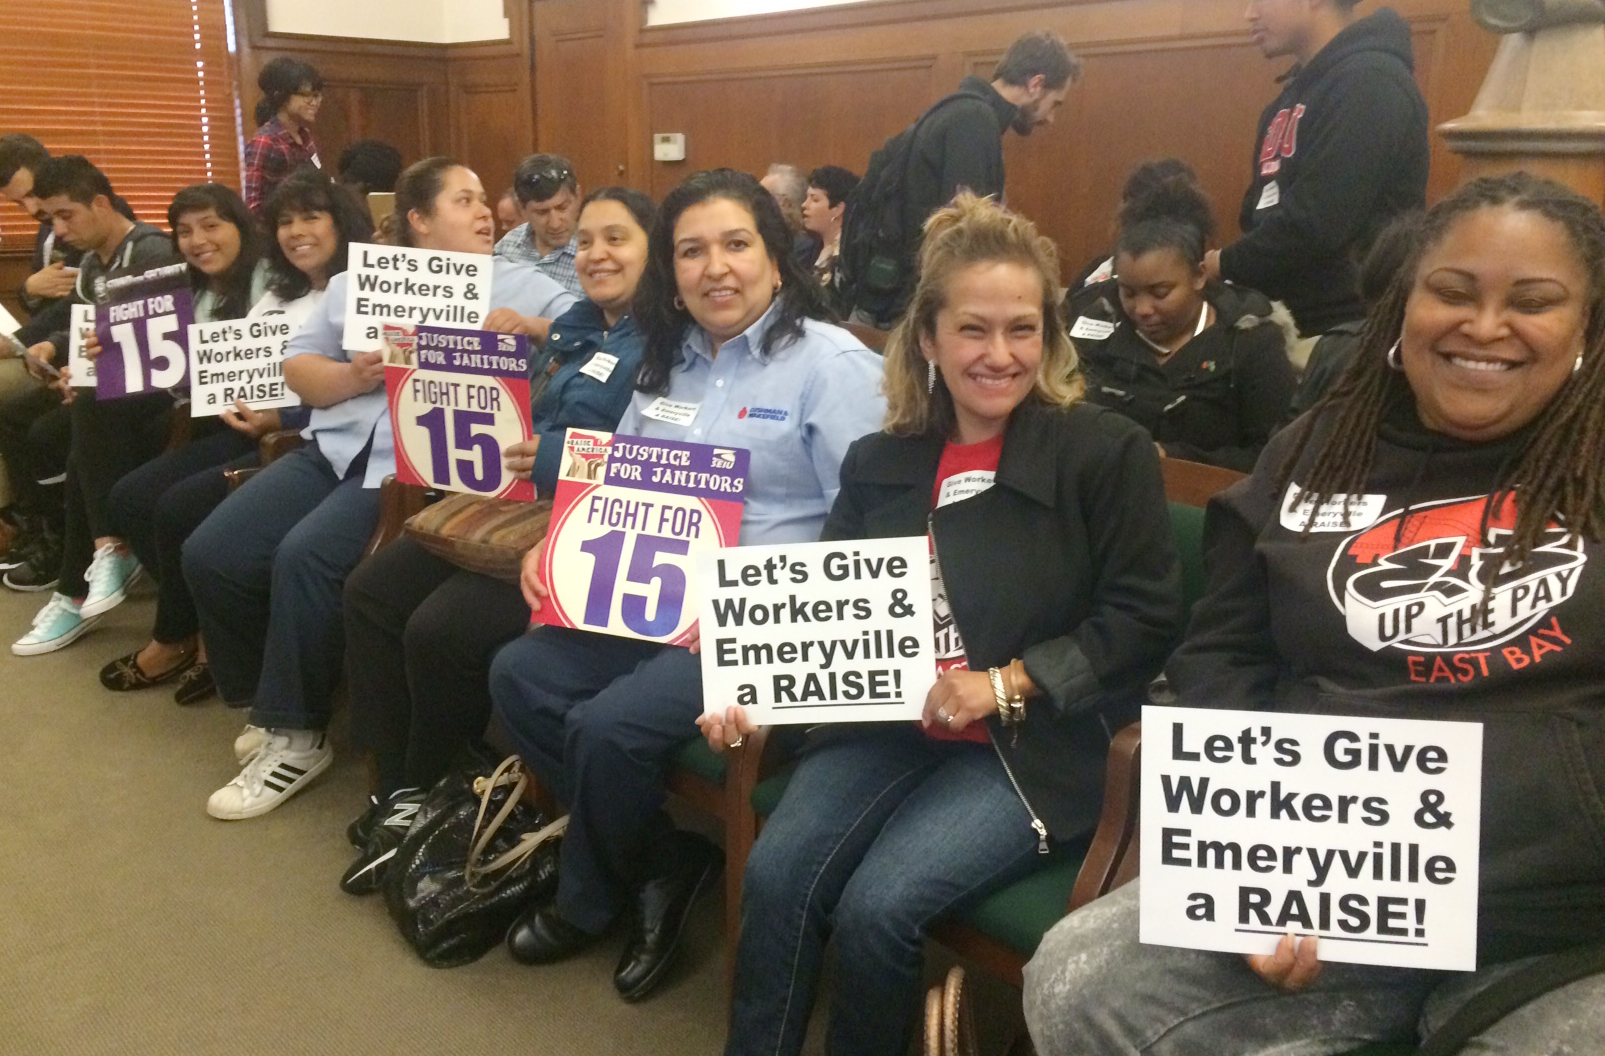 Fight for $15 members rally for higher minimum wage in Emeryville